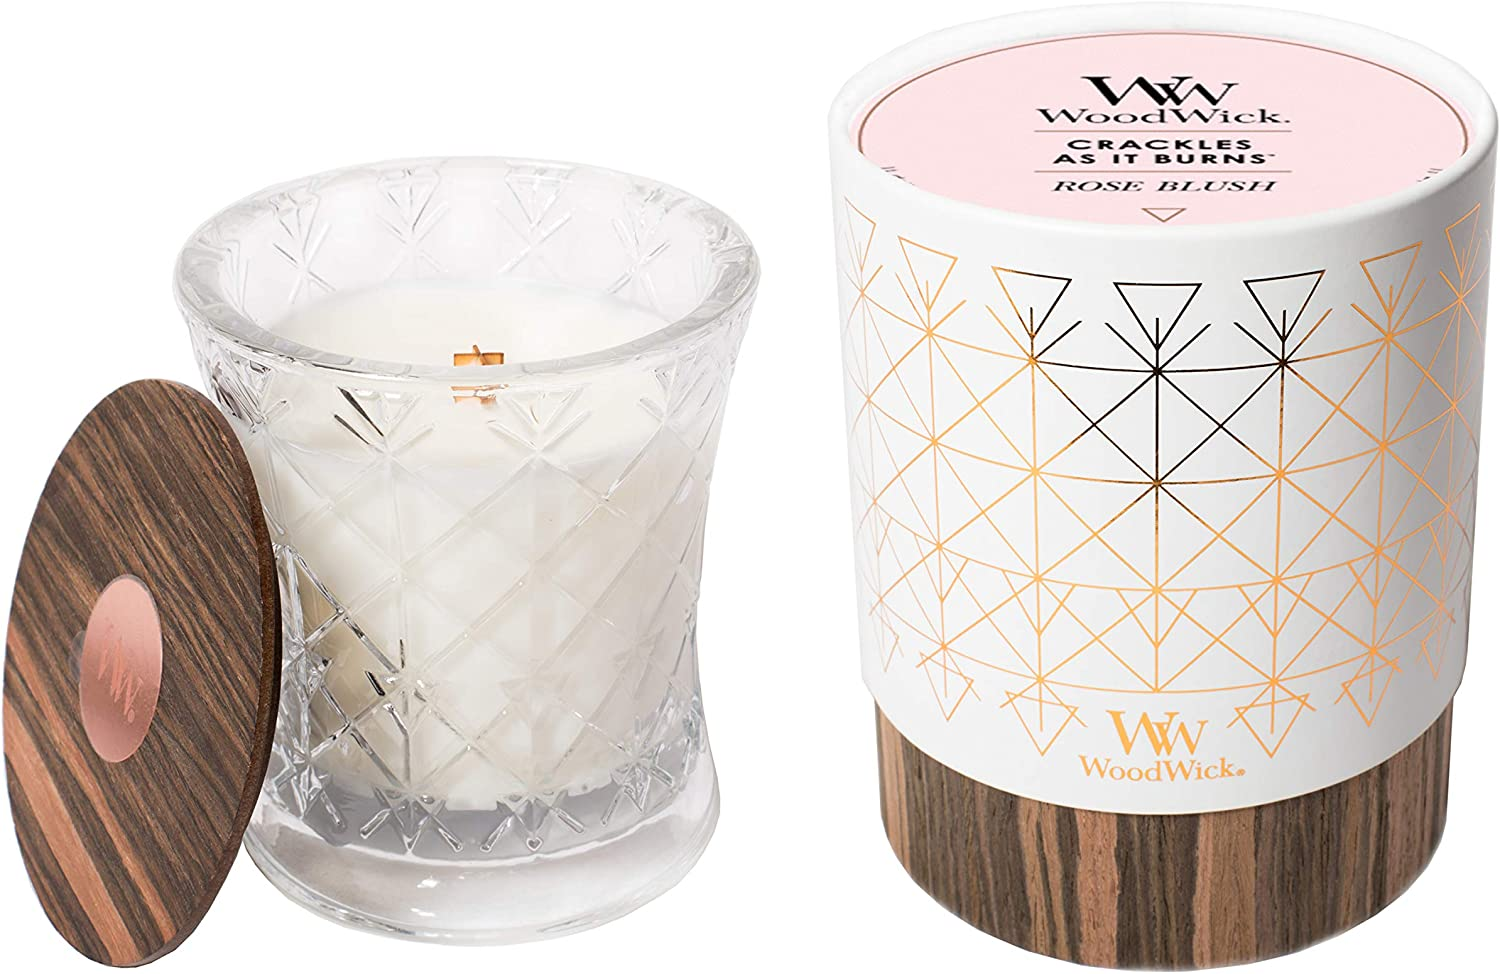 WoodWick Aura Rose Blush Scented Wood Wick 9.7 oz. Glass Jar Candle